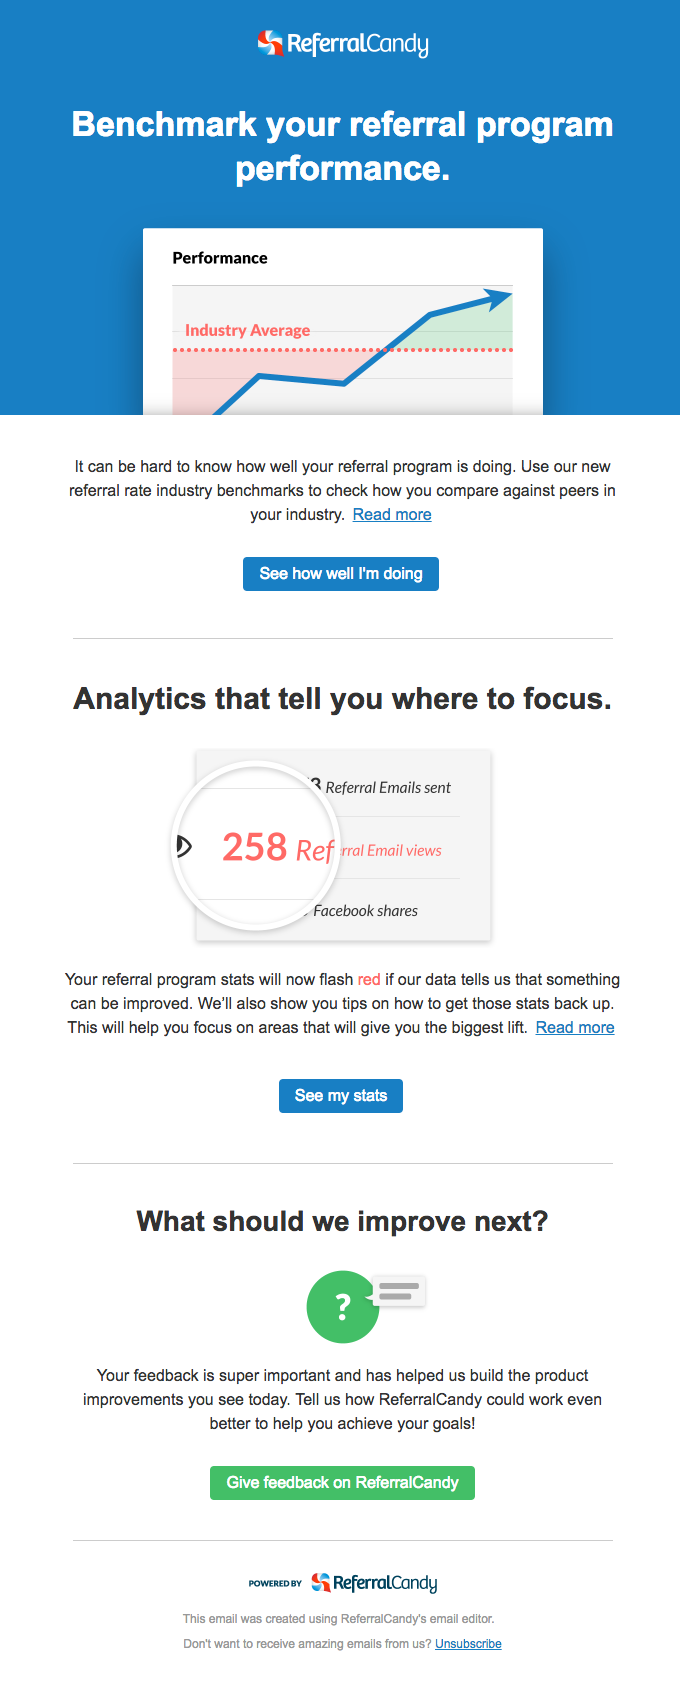 New Benchmark Your Referral Program With Improved Analytics